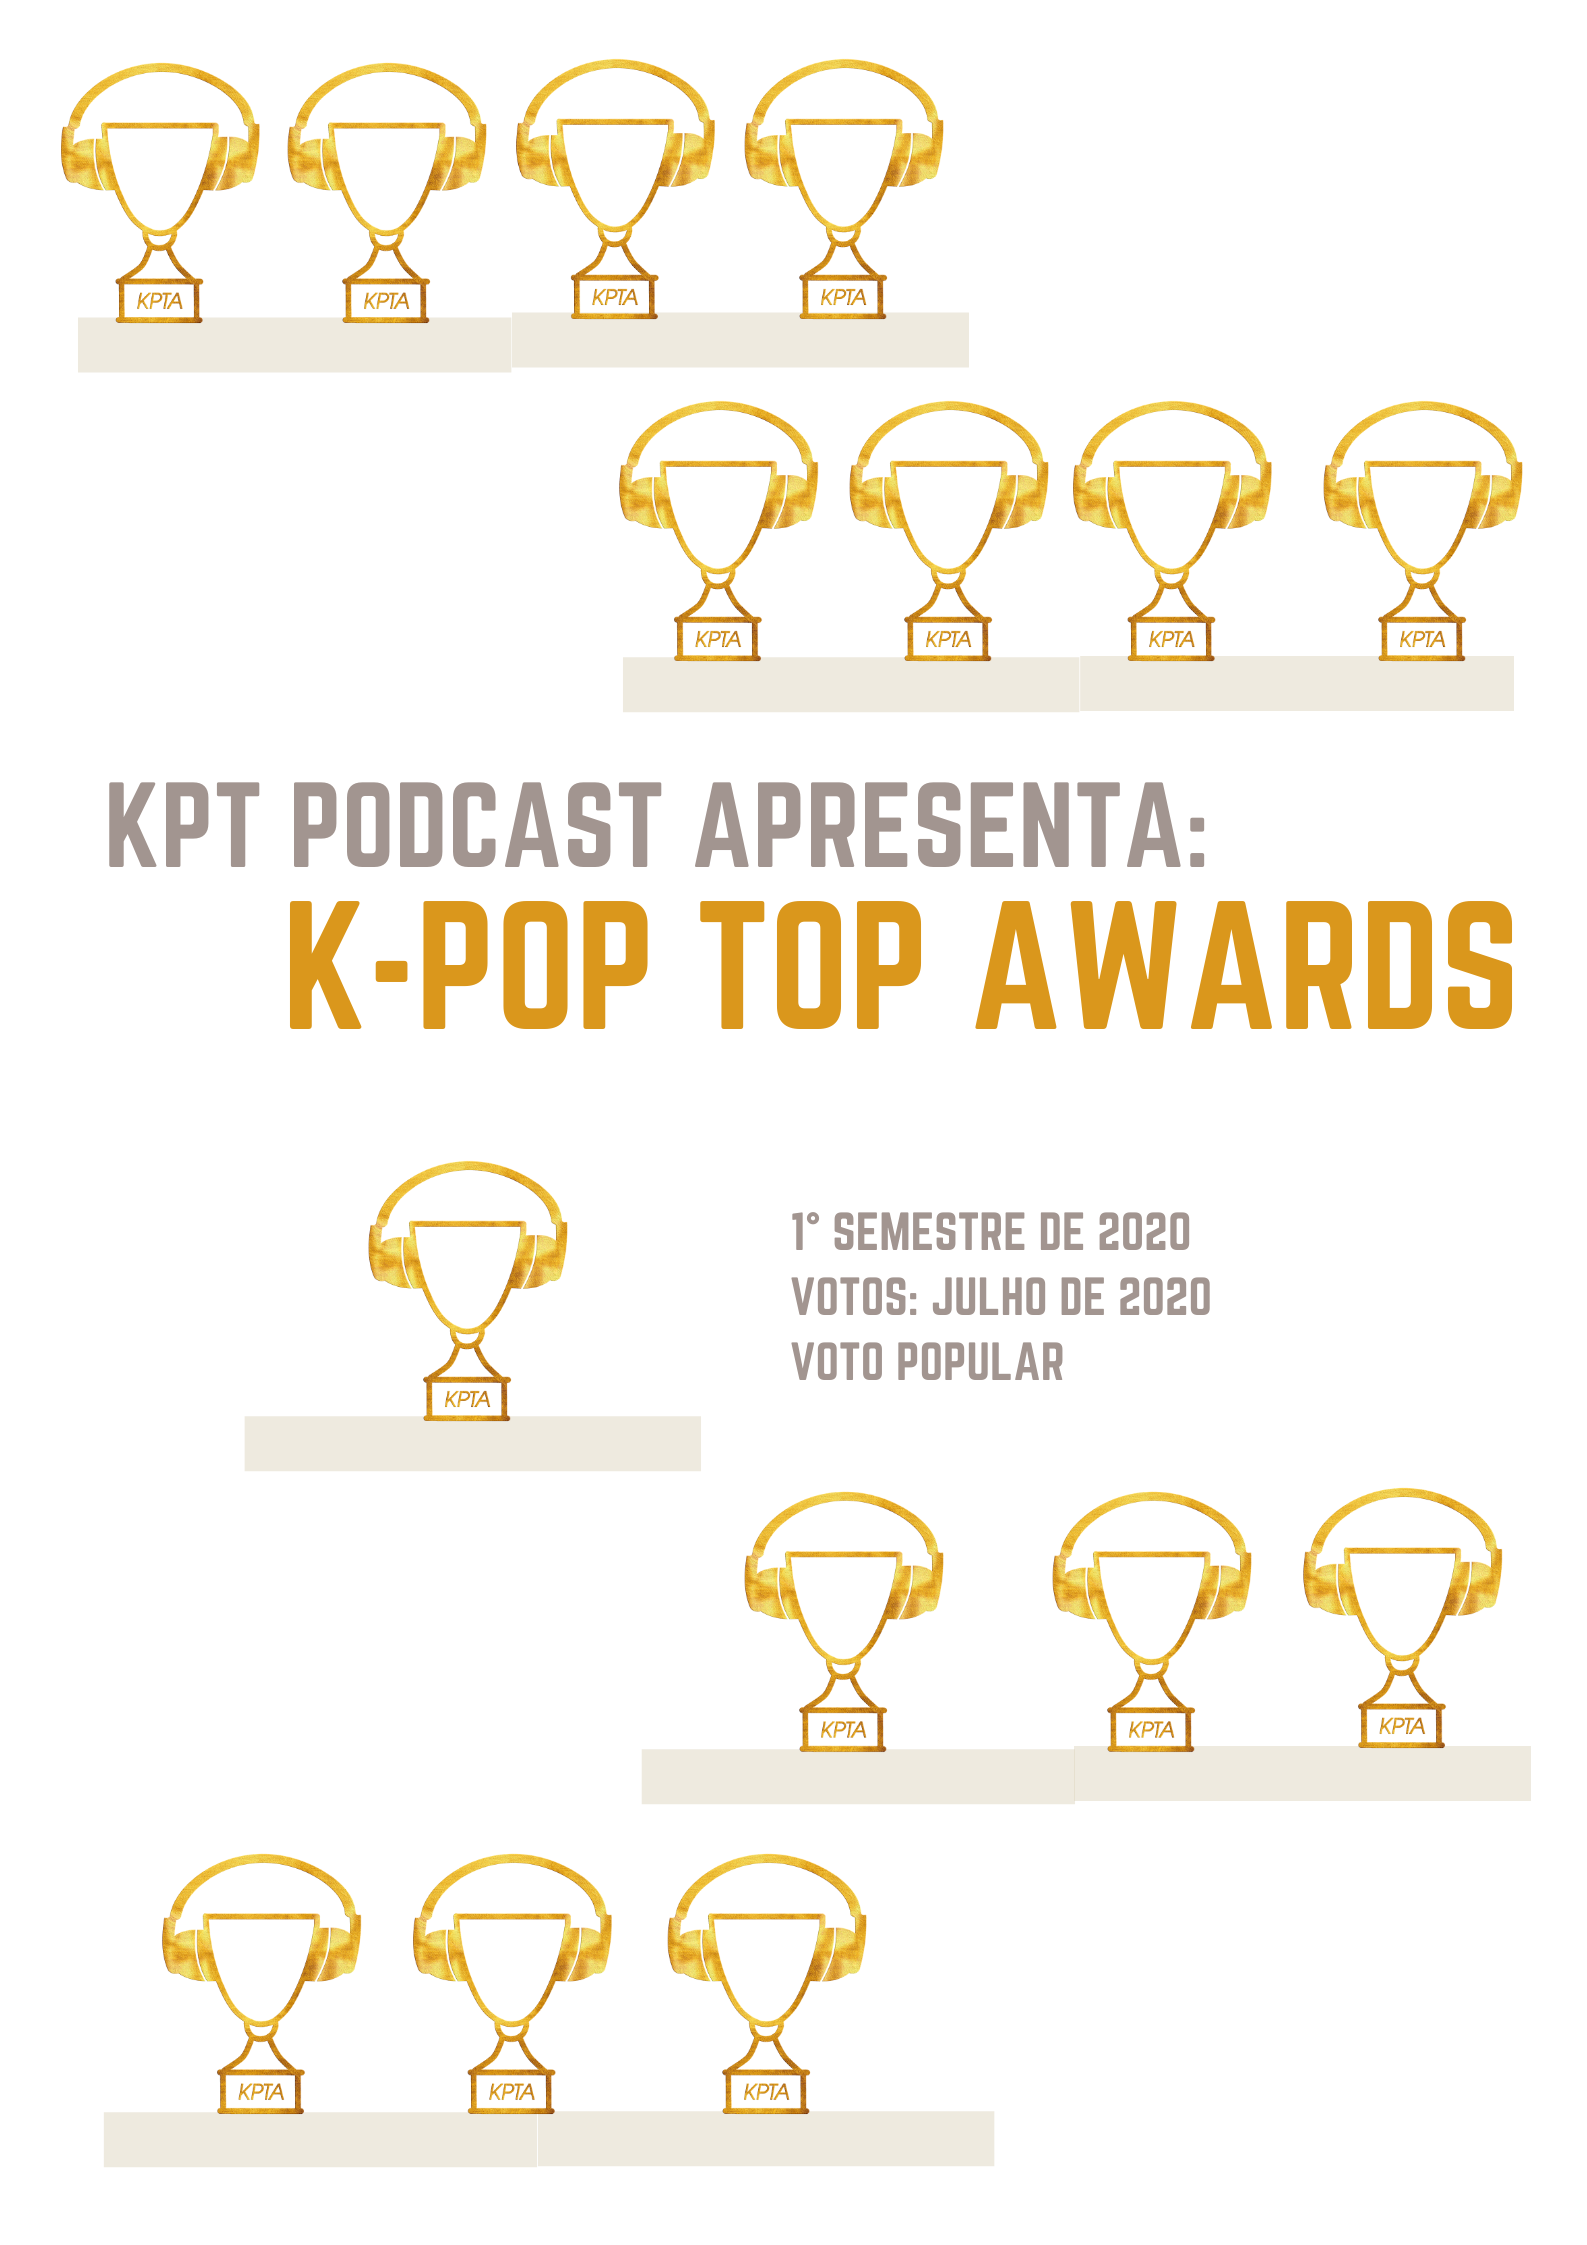 Recapitulando: K-Pop Top Awards